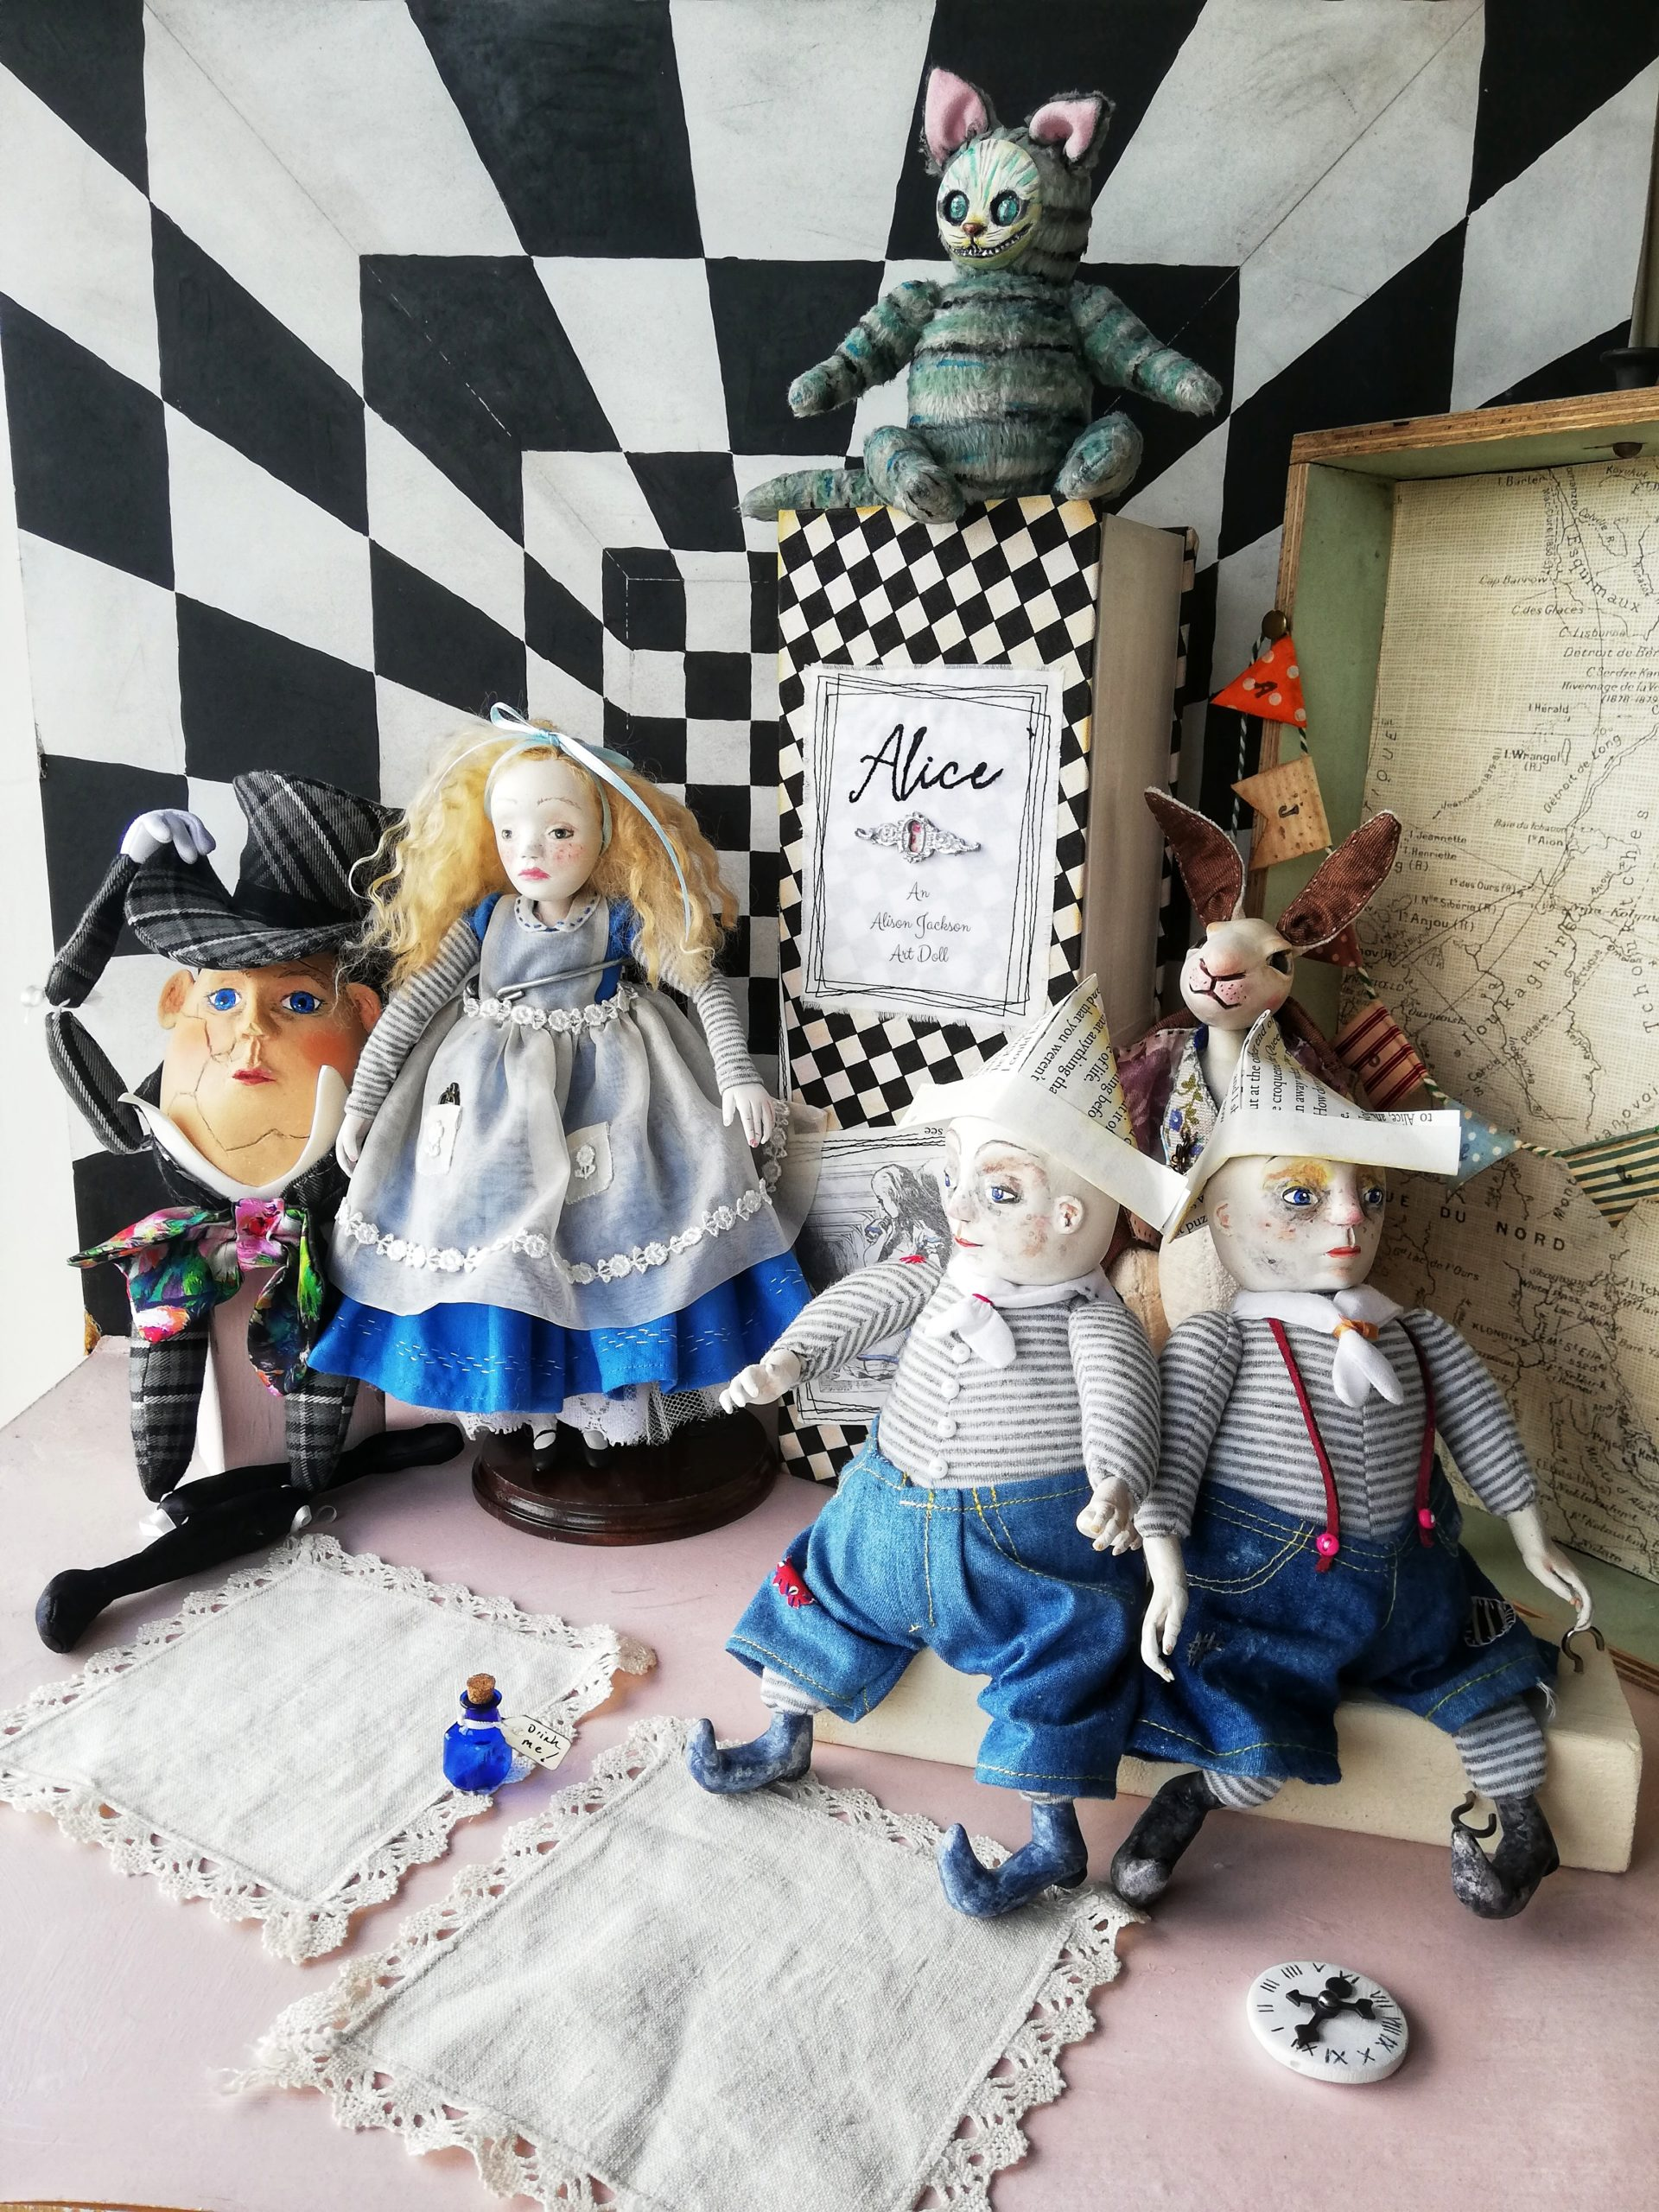 Alice and Wonderland Characters